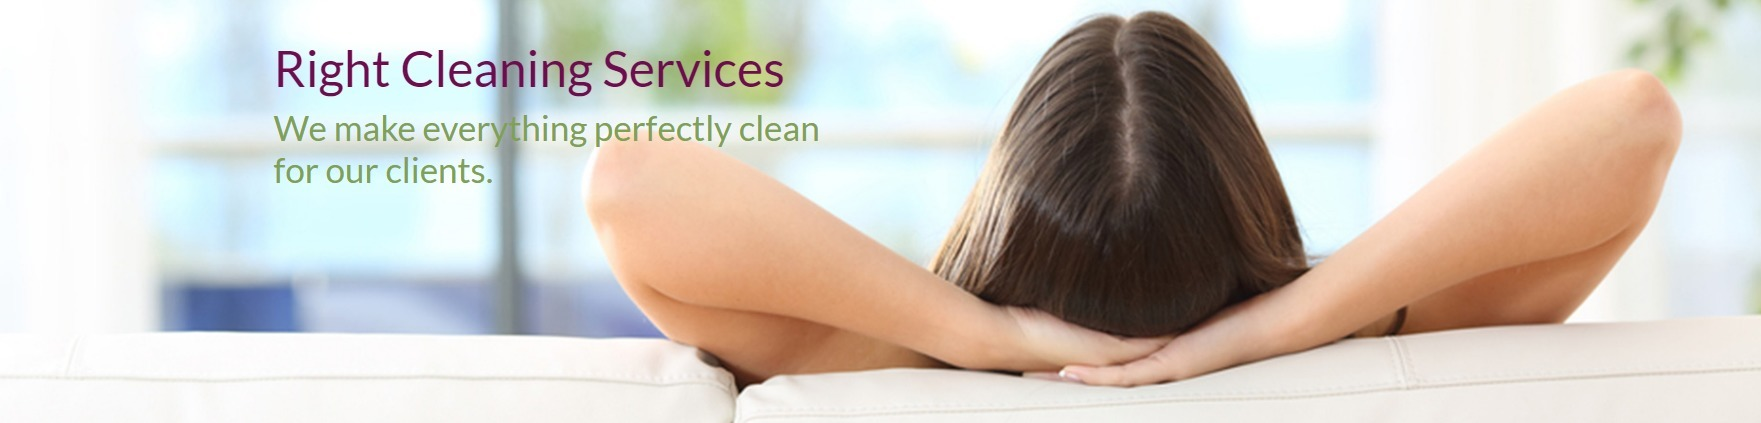 Right Cleaning (@rightcleaning) Cover Image